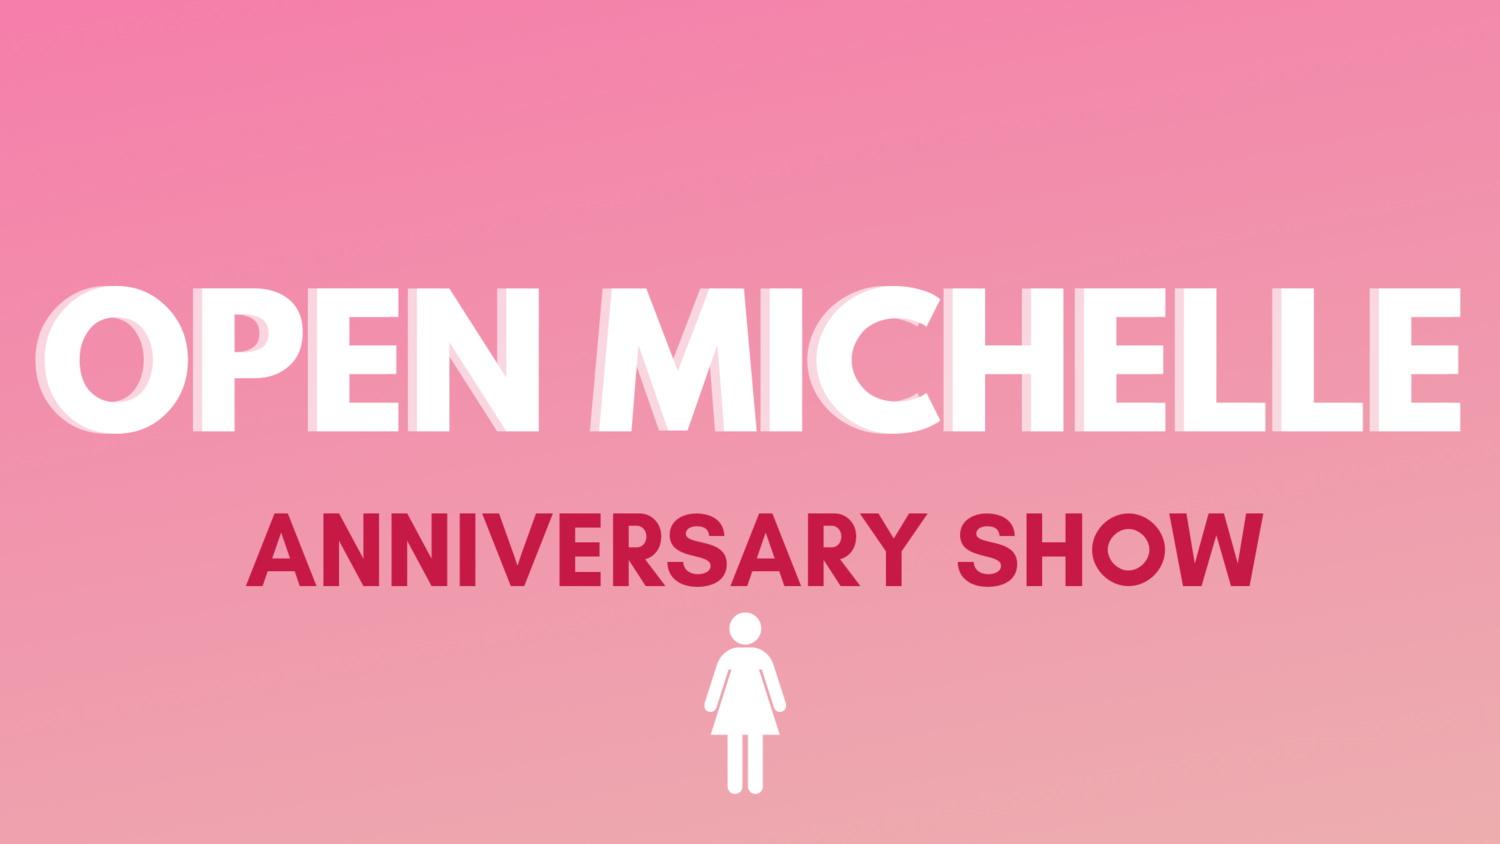 On its first anniversary, Open Michelle is more vital than ever